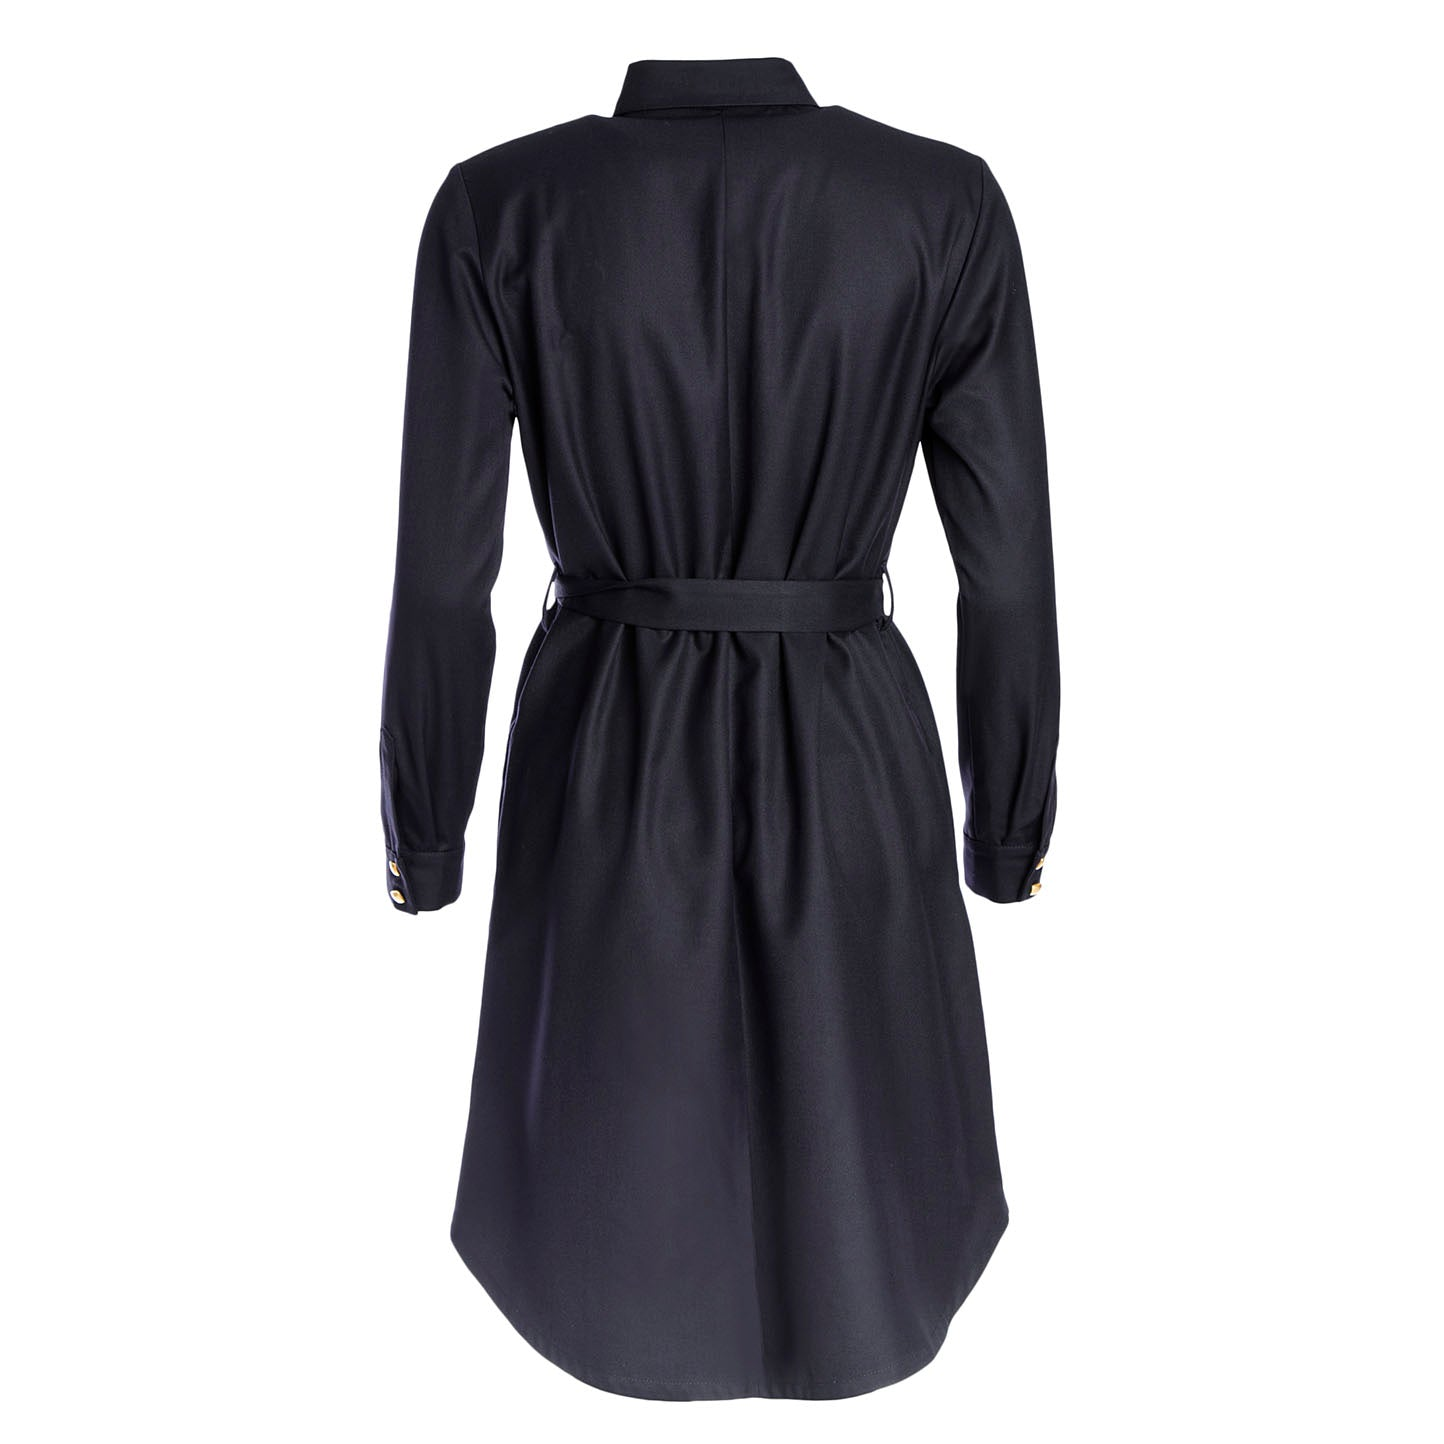 dark blue shirt dress Mahla Clothing